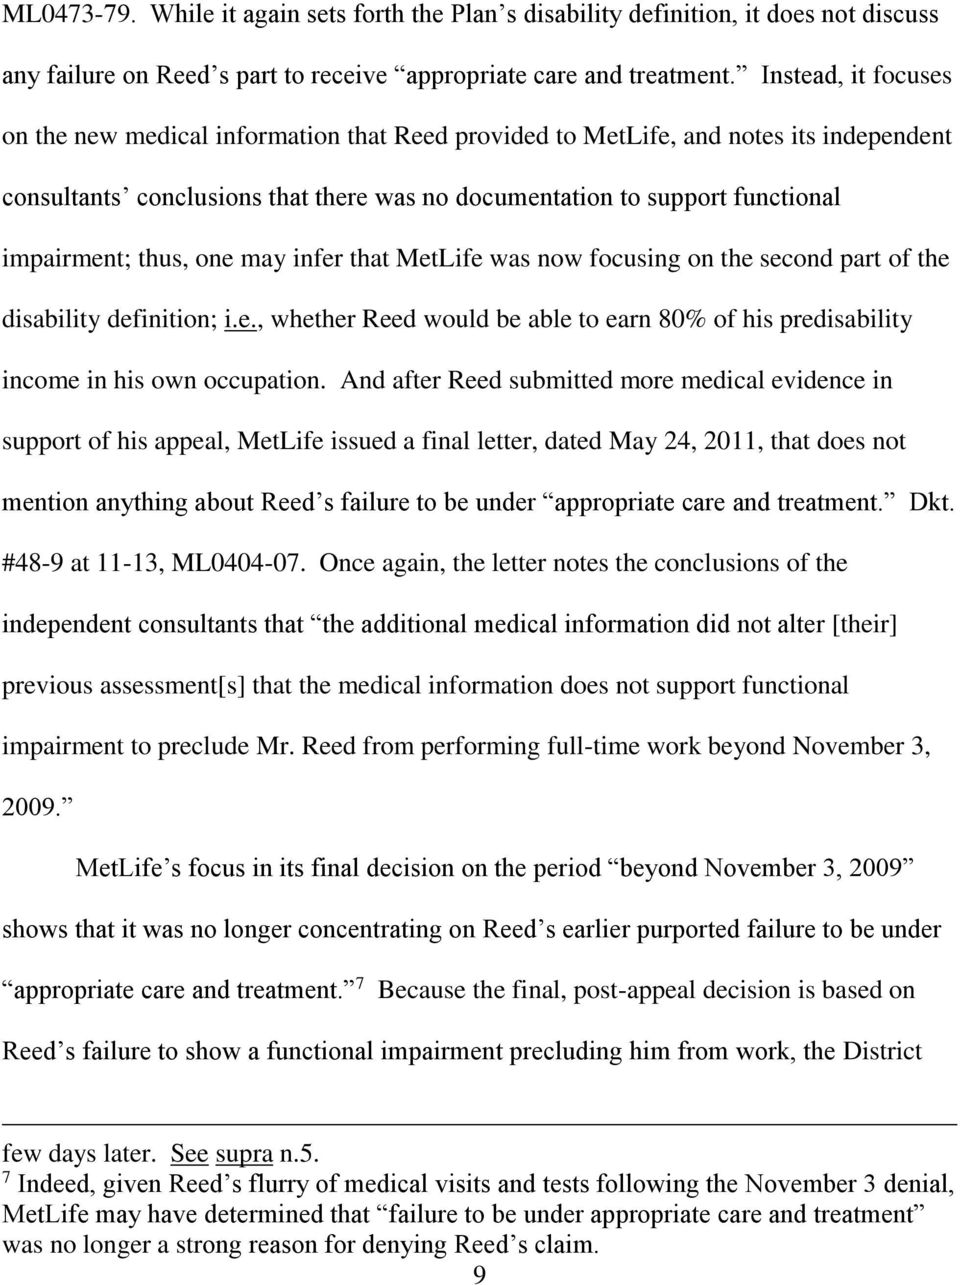 thus, one may infer that MetLife was now focusing on the second part of the disability definition; i.e., whether Reed would be able to earn 80% of his predisability income in his own occupation.